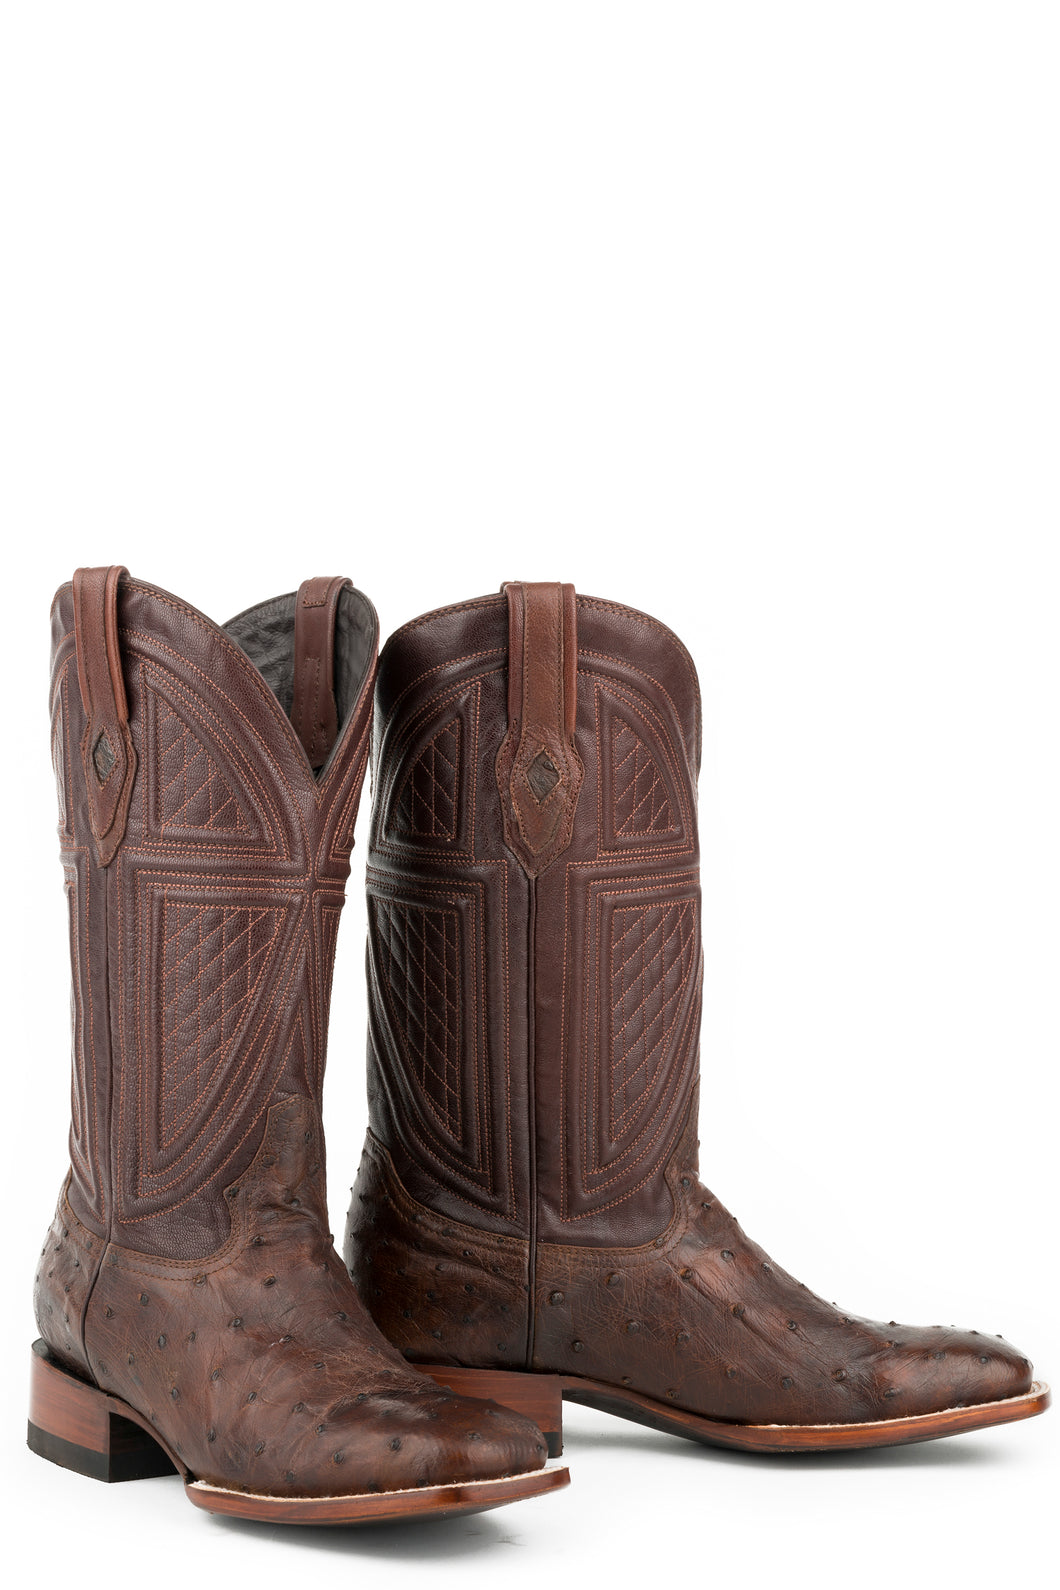 Jackson Boot Mens Boot Tobacco Ostrich Vamp Brown 13